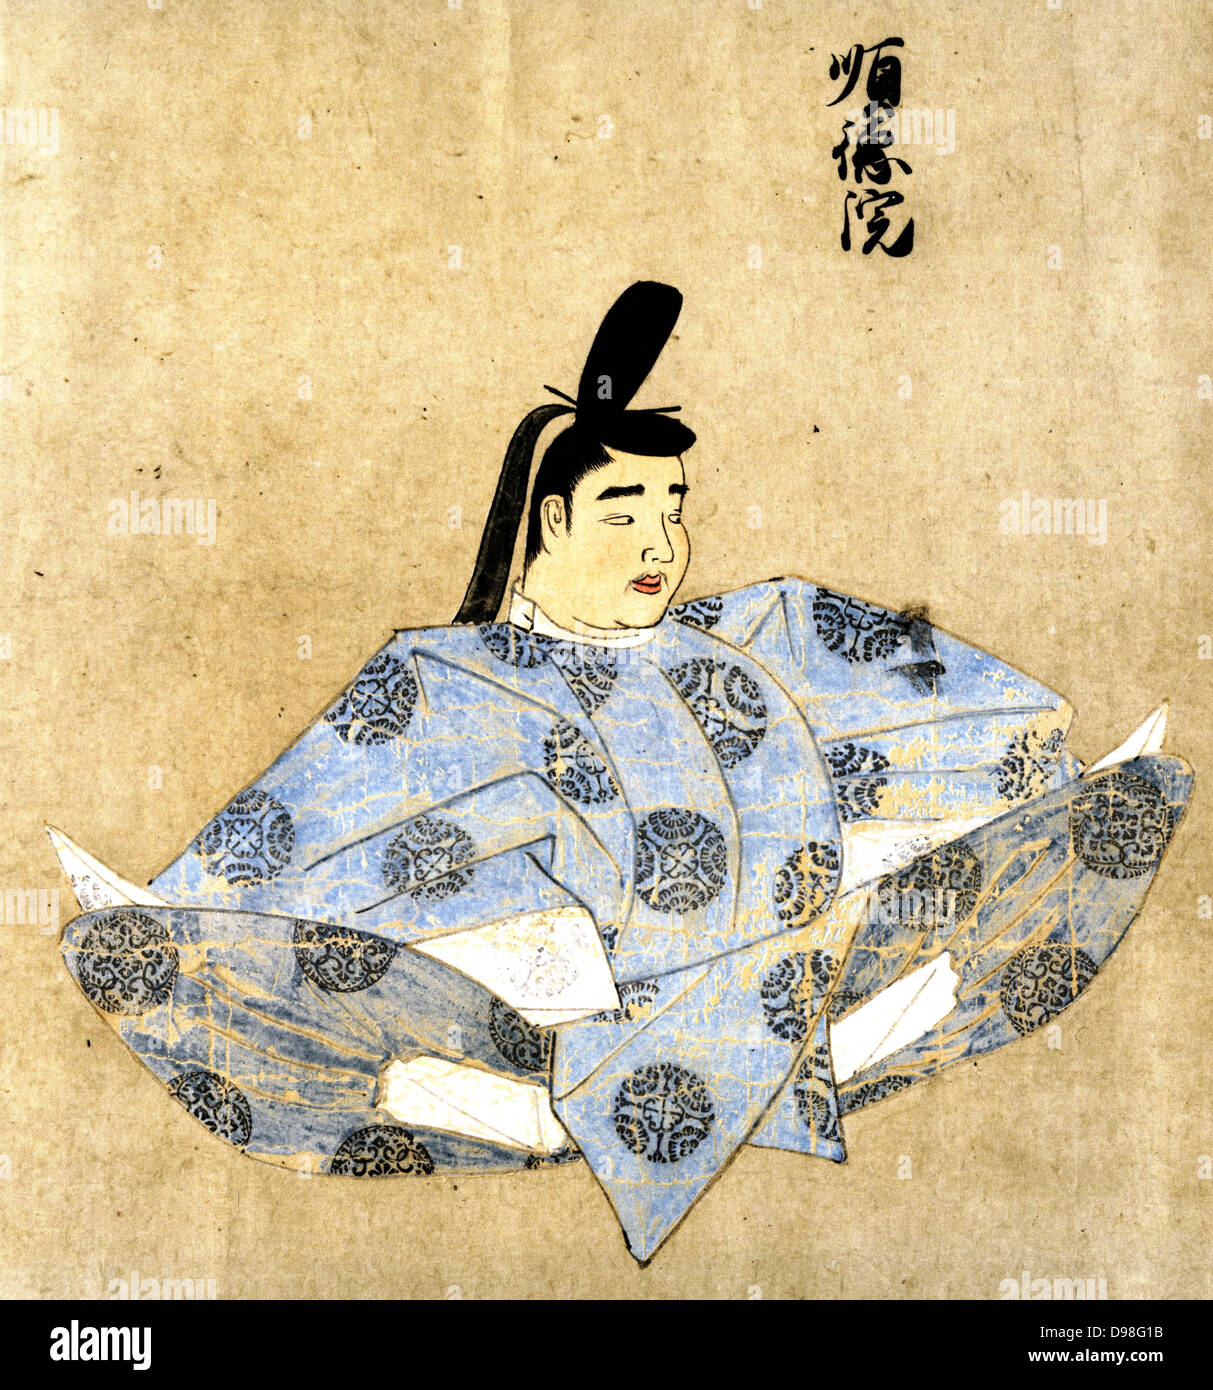 Emperor Juntoku (1197 – 1242)84th emperor of Japan, reigned from 1210 to 1221 - Stock Image